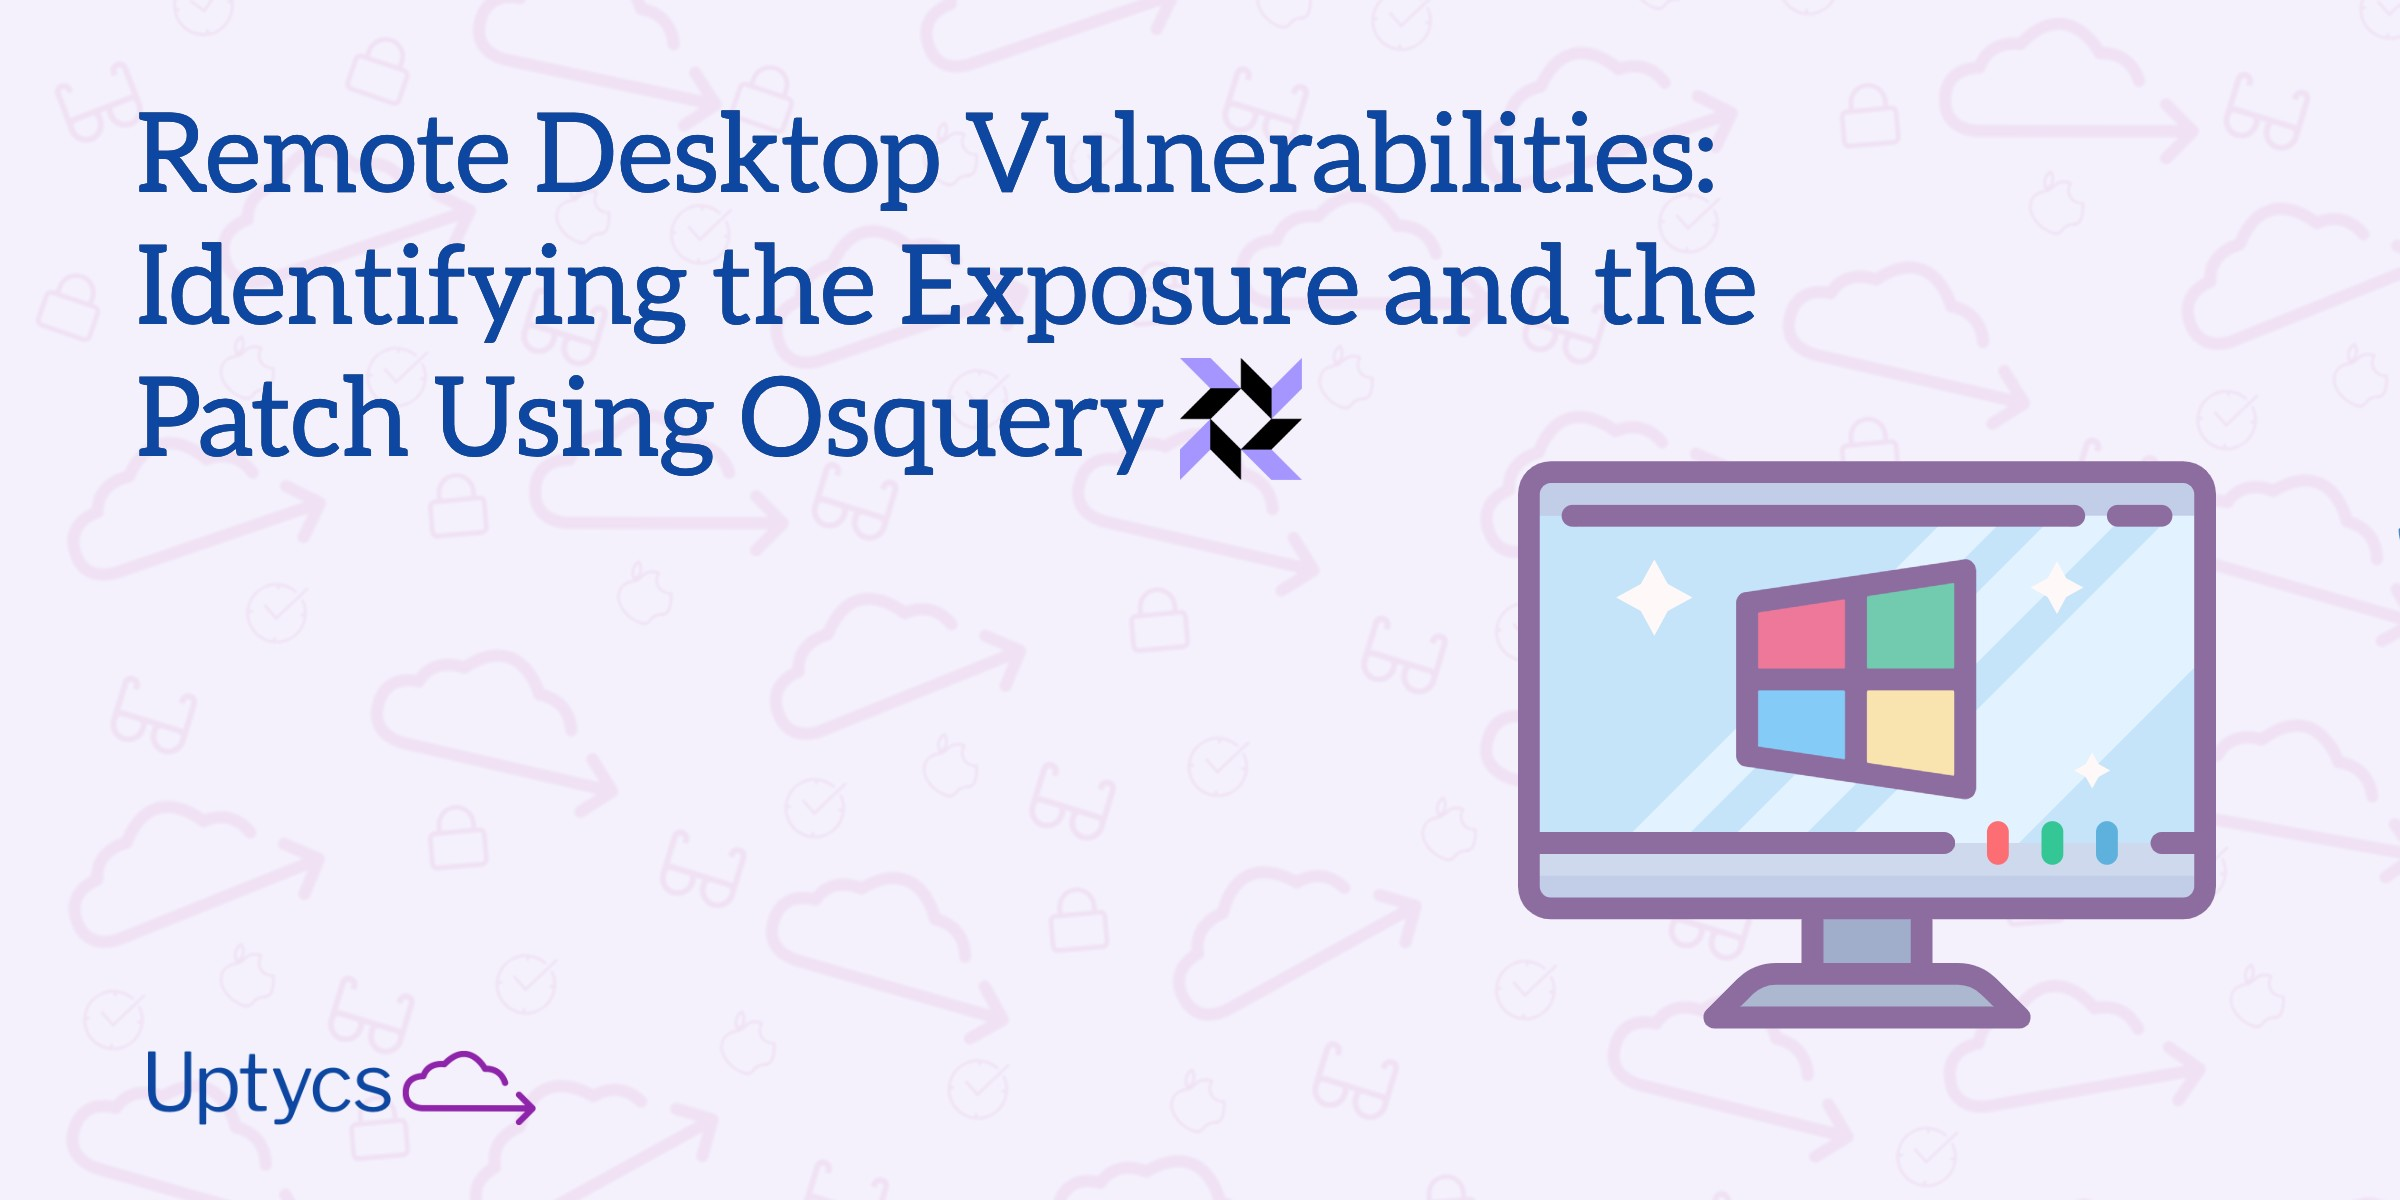 Remote Desktop Vulnerabilities: Identifying the Exposure and Patch Using Osquery